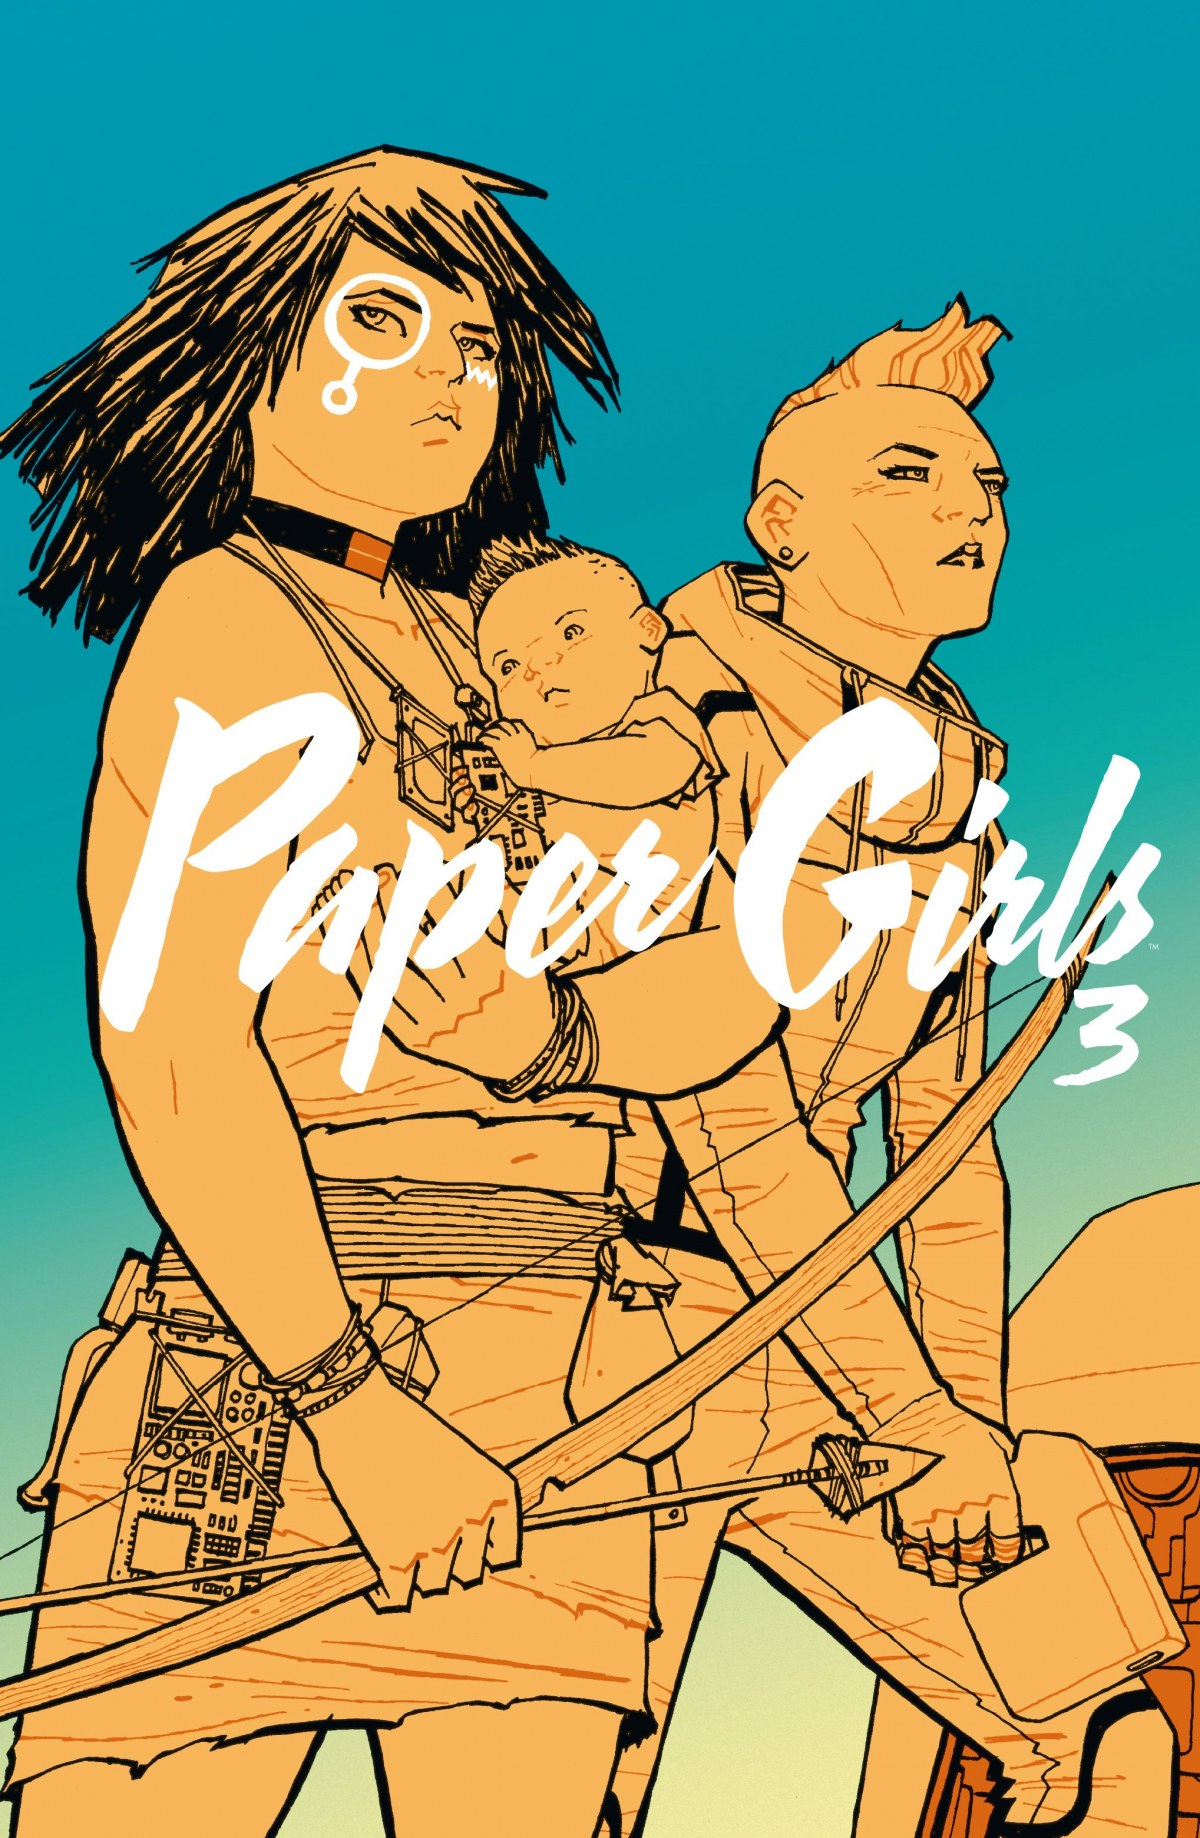 PAPERS GIRLS 3